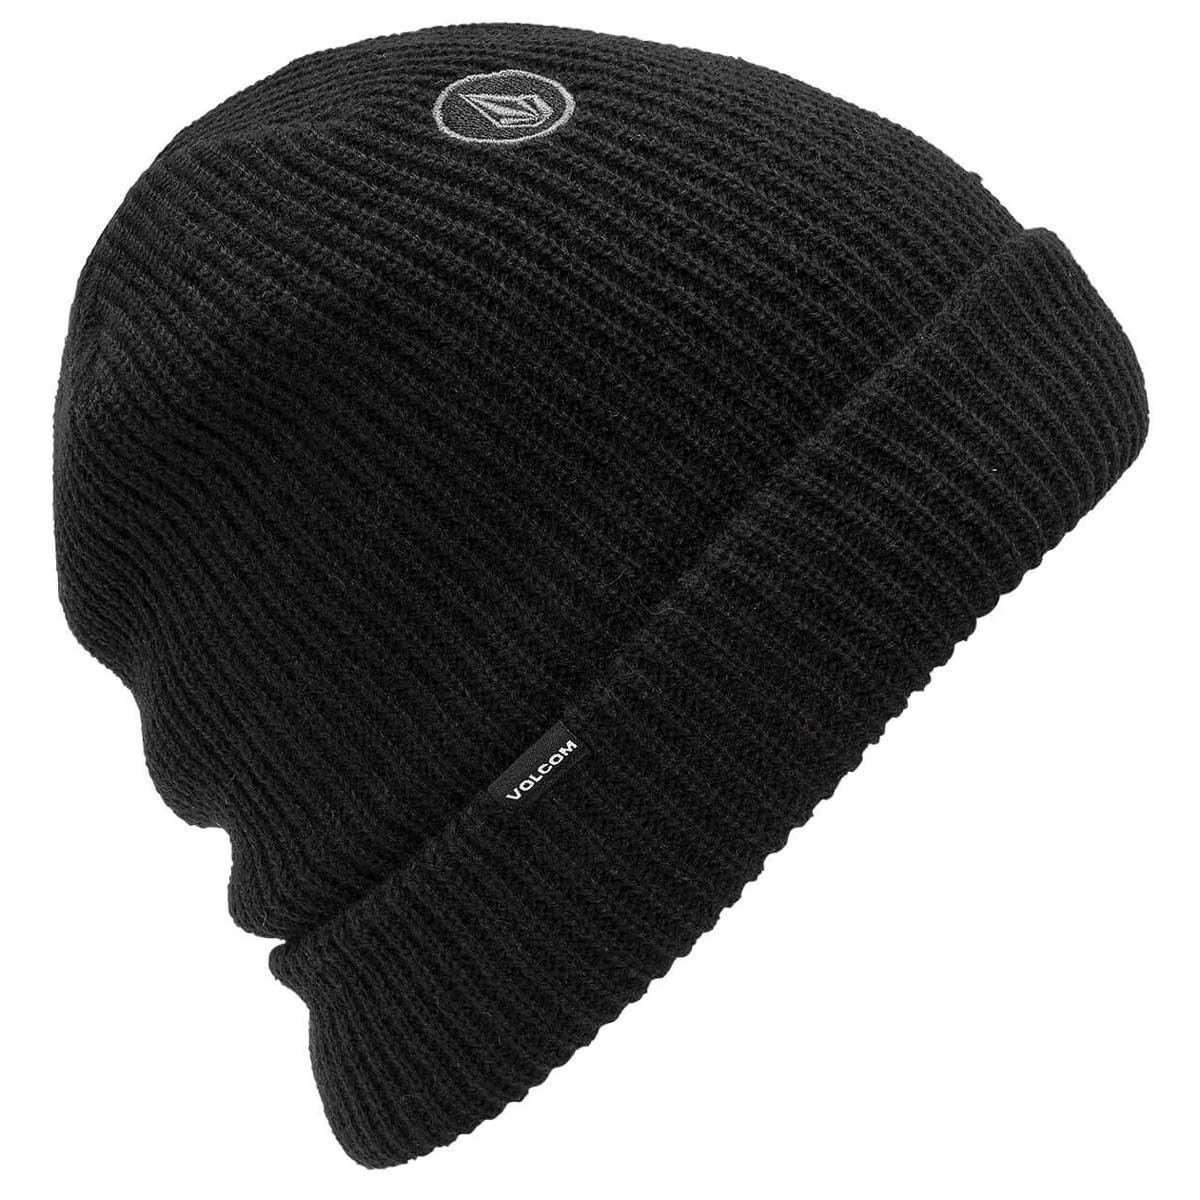 1fa551a0ce1 Volcom Sweep Lined Beanie Mens. Loading zoom